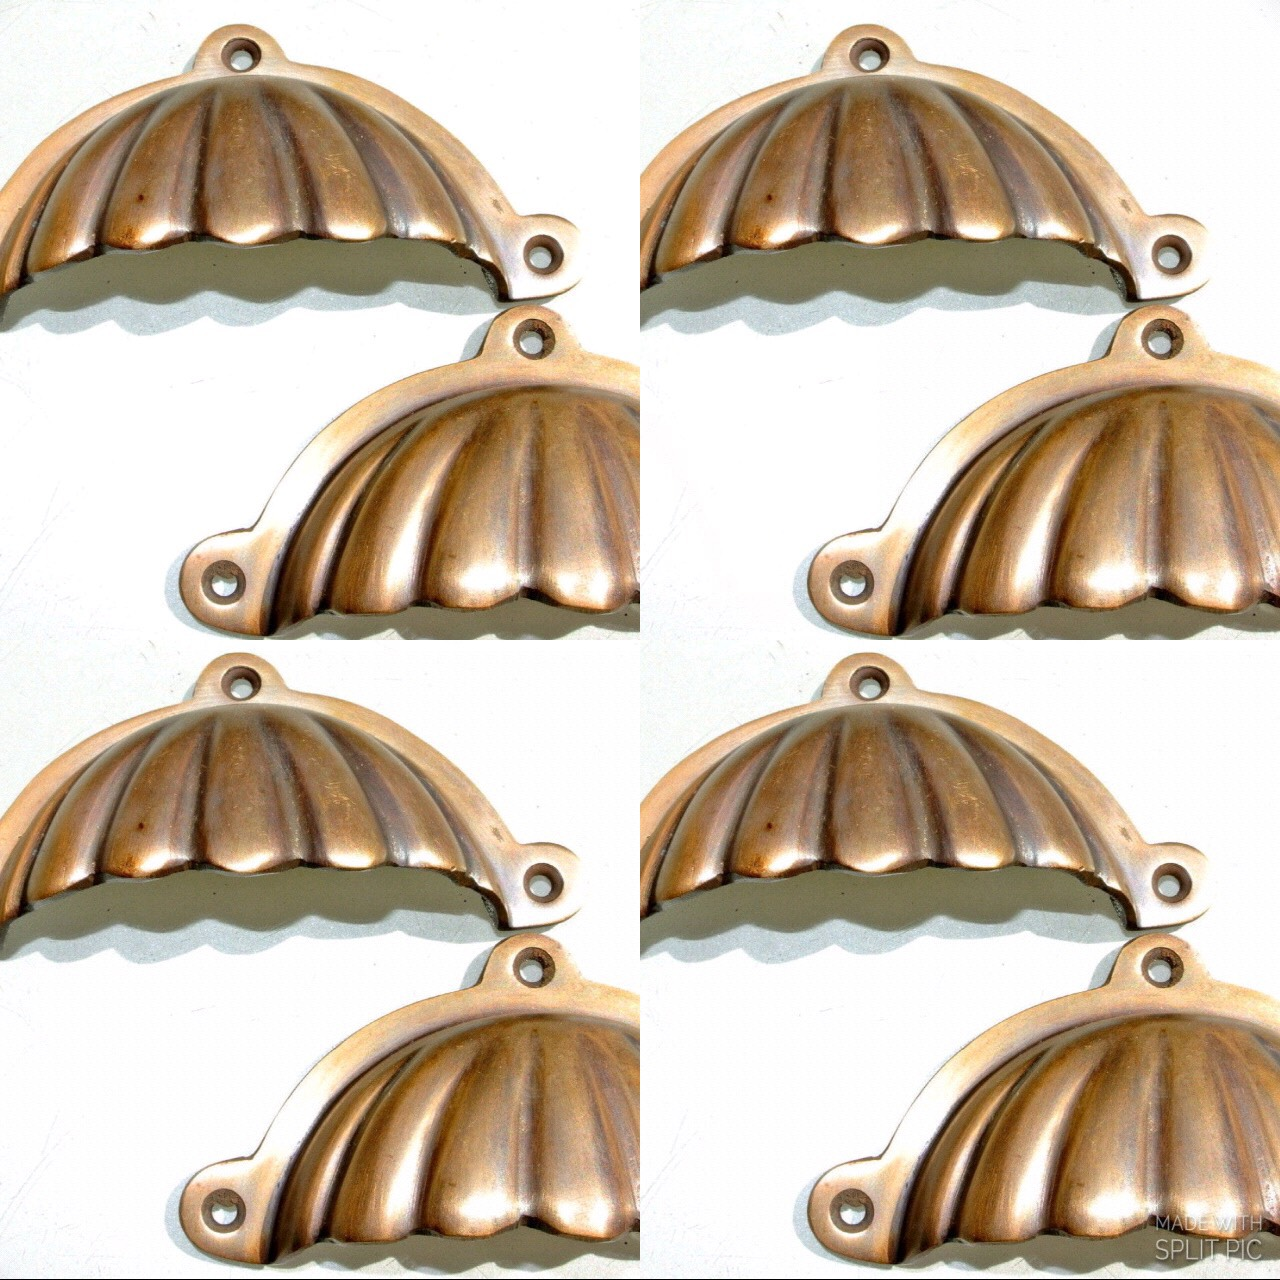 8 Shell Shape Pulls Handles Solid Brass Vintage Style 4